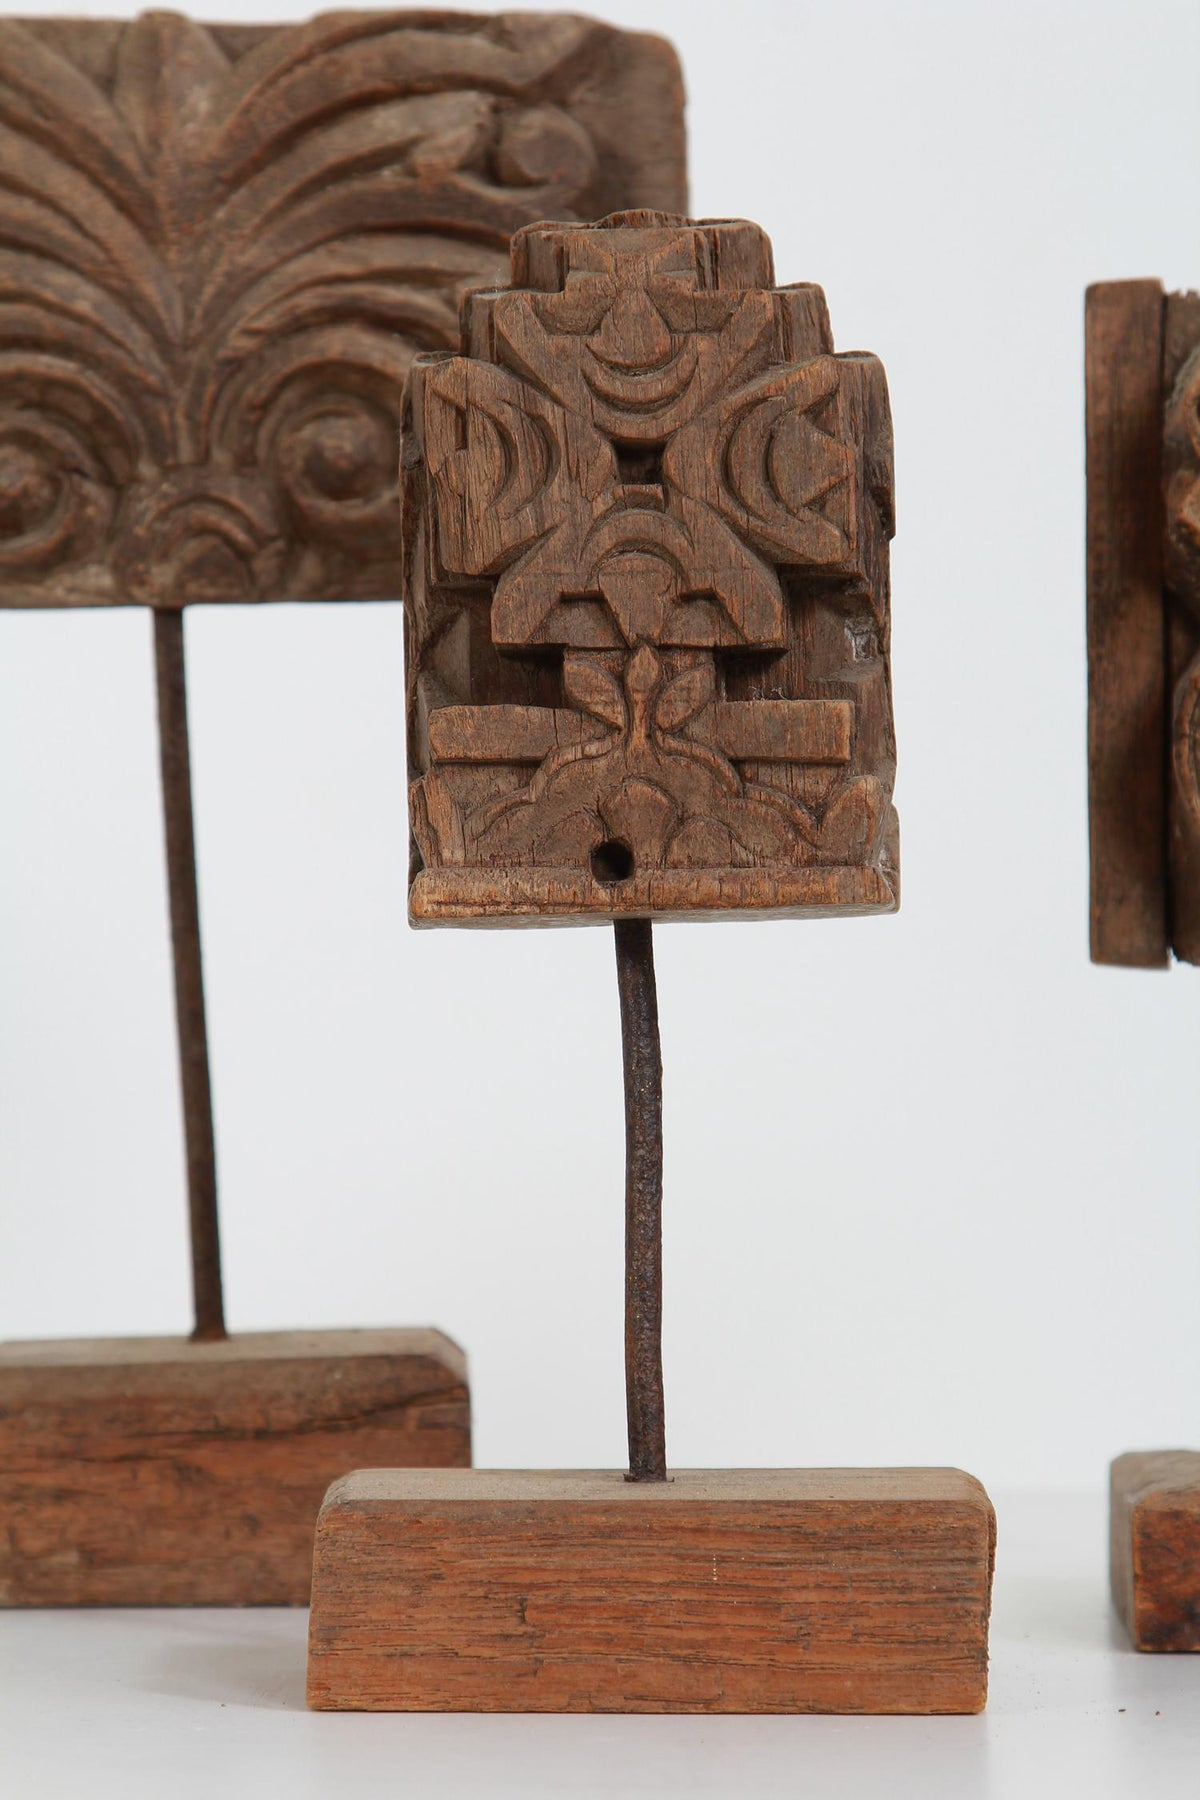 THREE BEAUTIFULLY CARVED WOOD  19THC TEMPLE FRAGMENTS